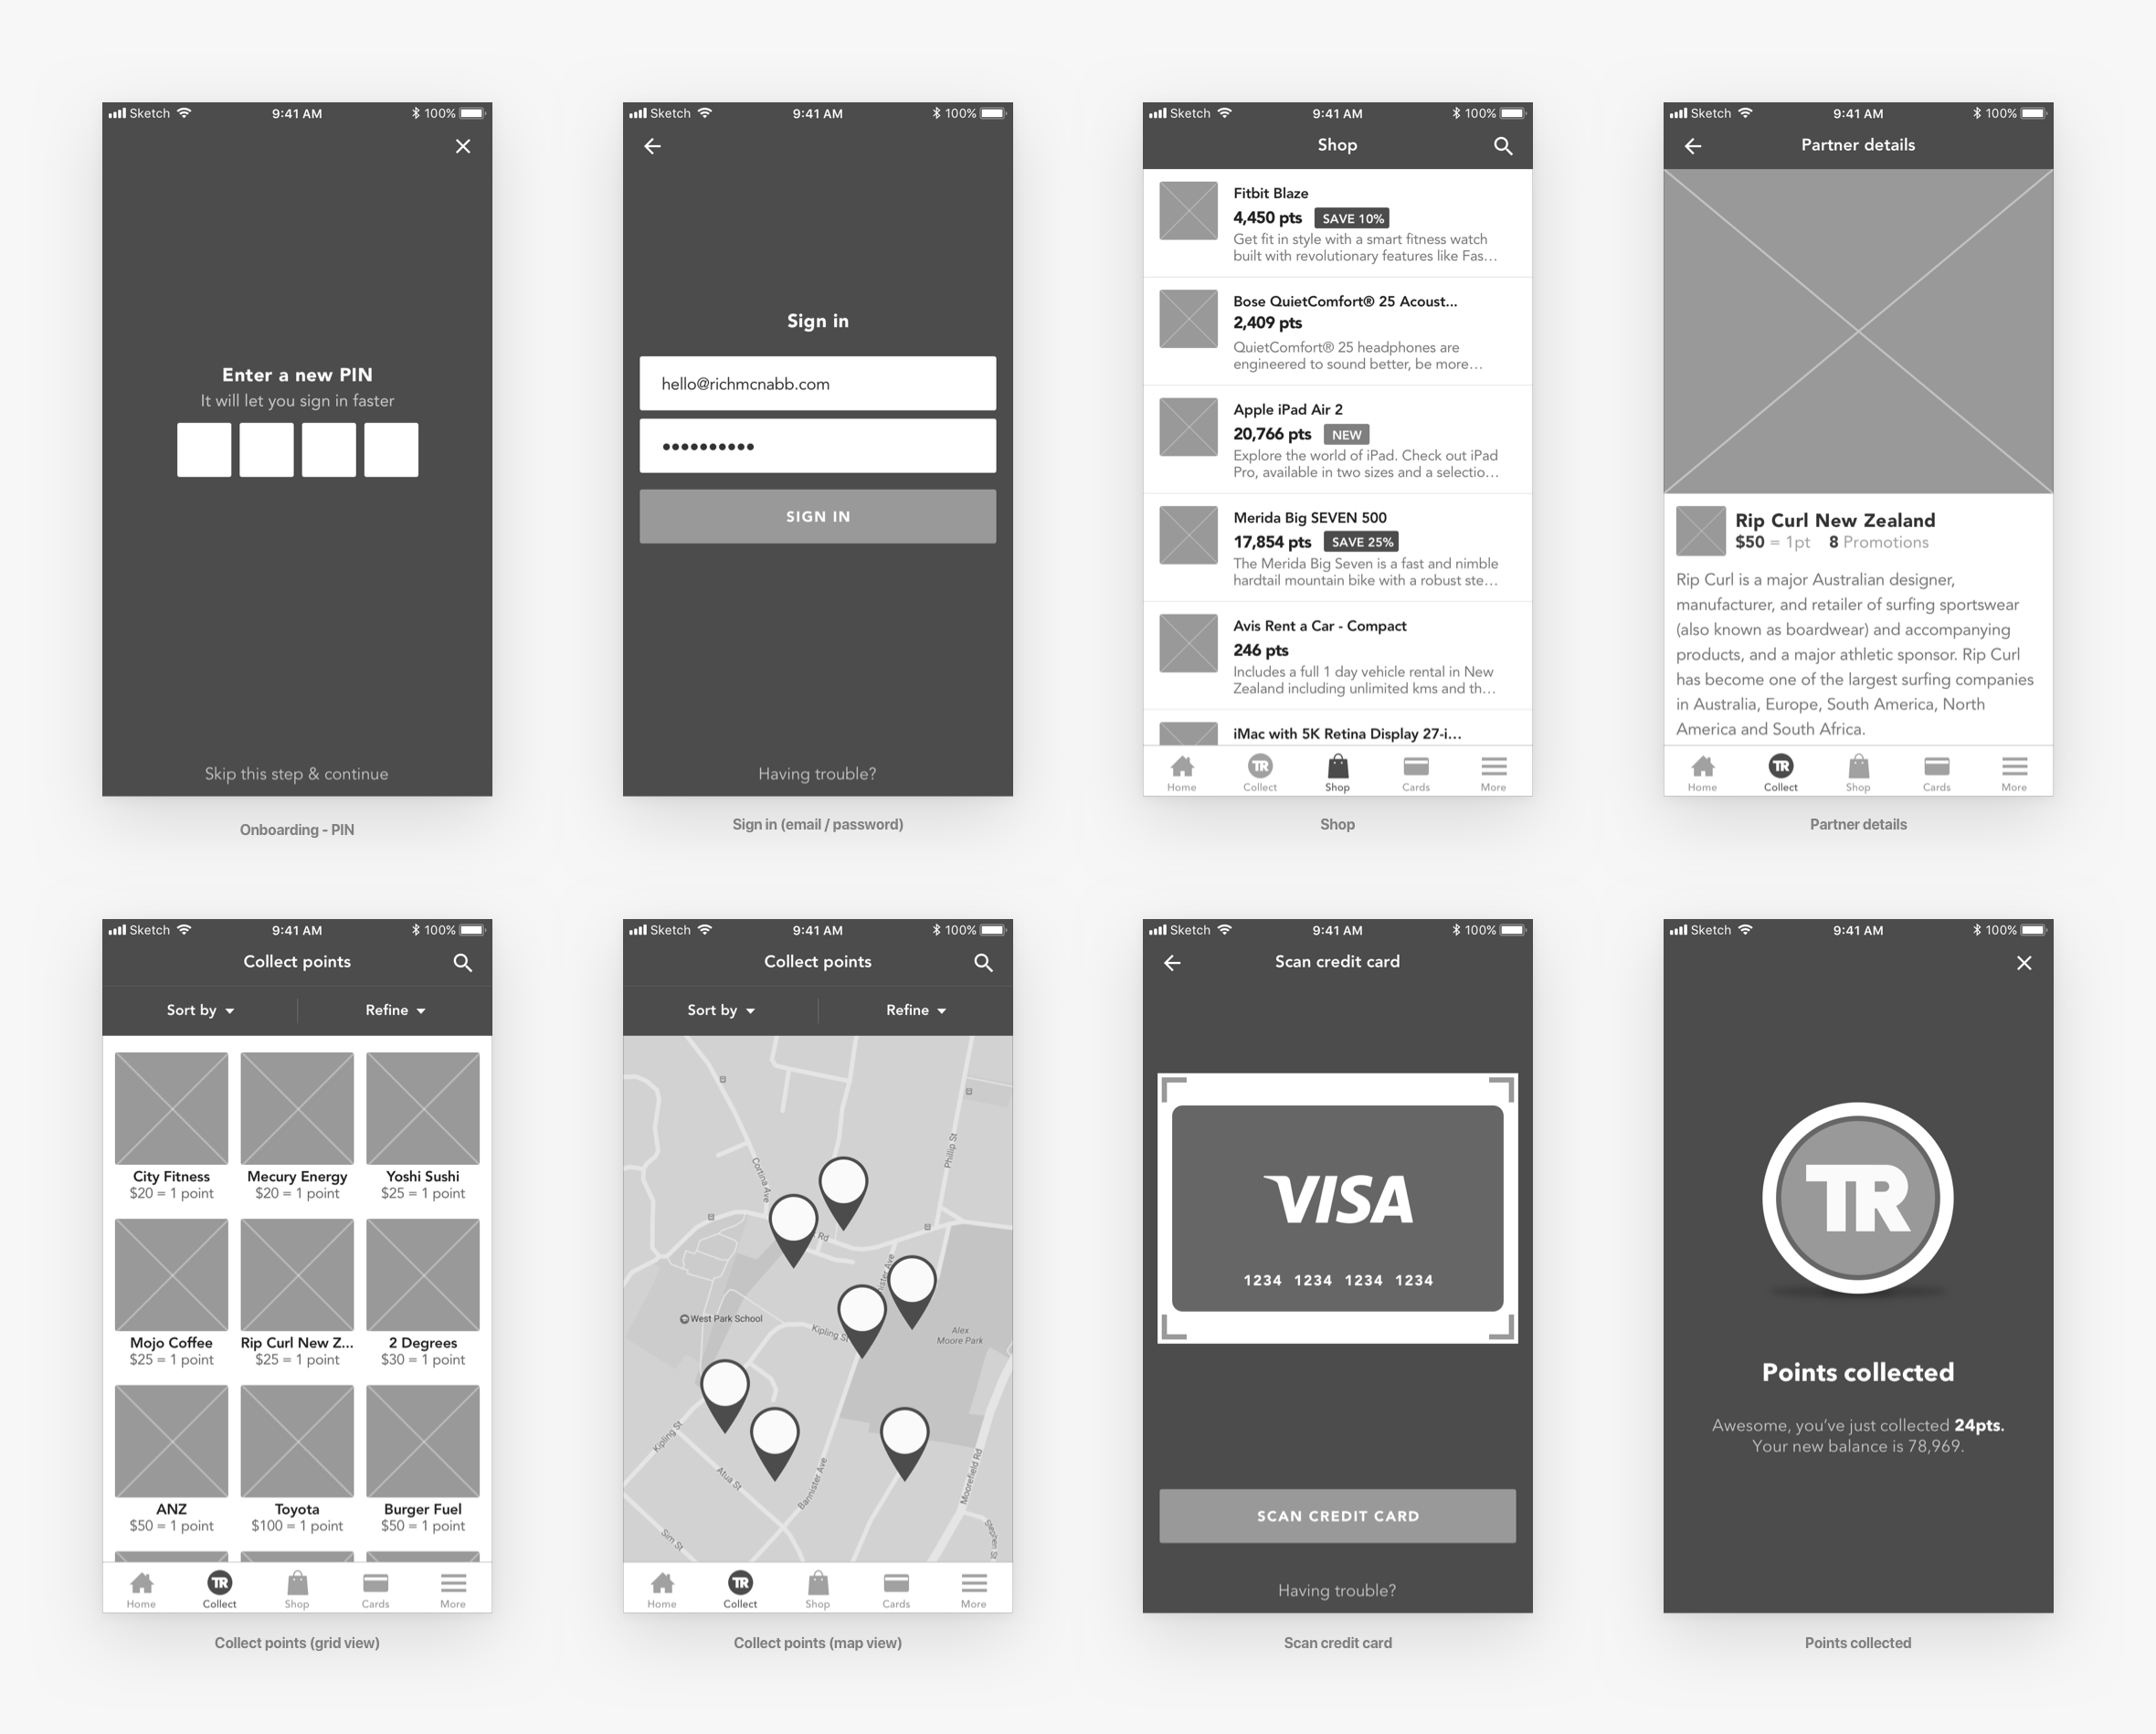 travel-rewards-wireframes